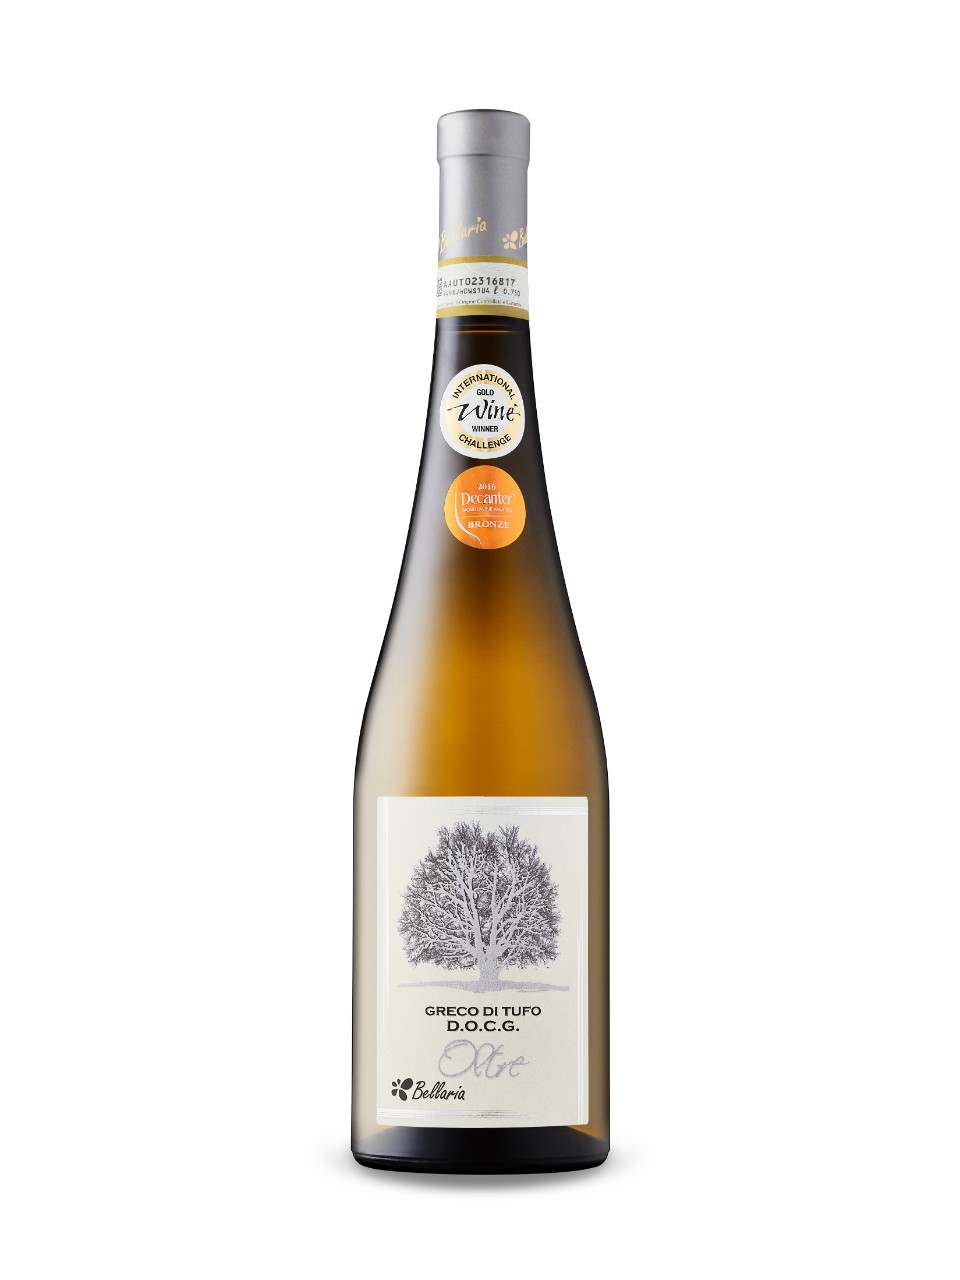 Image for Greco Di Tufo Oltre DOCG 2015 from LCBO